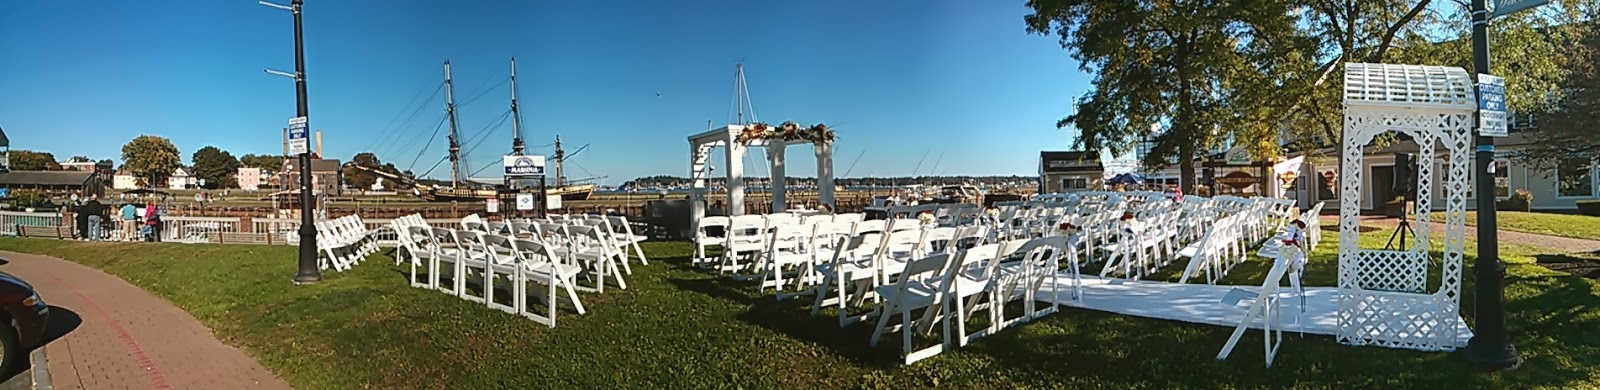 Salem waterfront hotel weddings january 2014 for Outdoor wedding venues ma